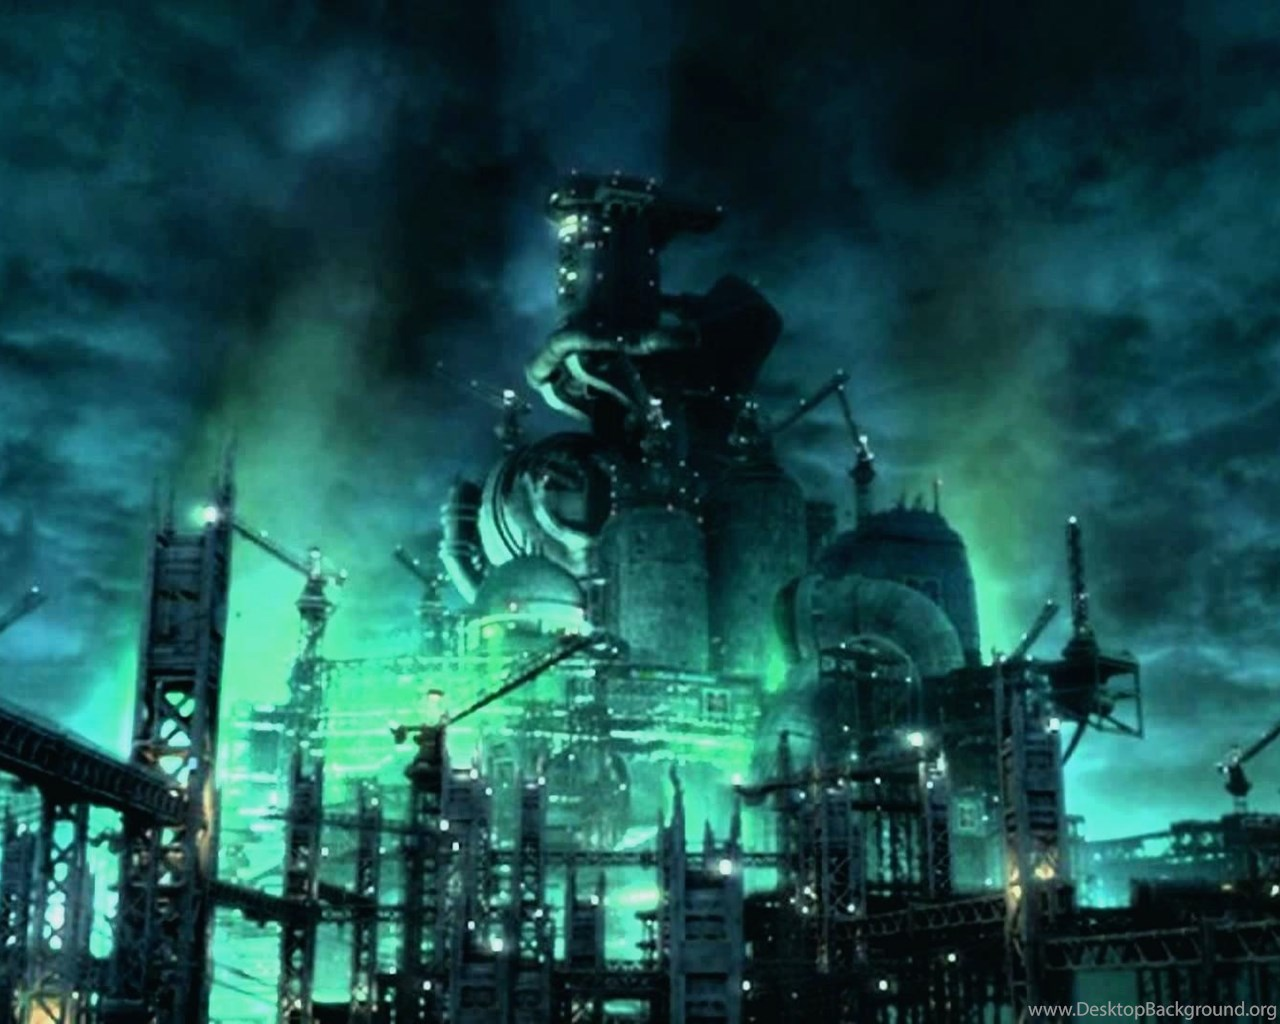 Final Fantasy Vii Wallpapers Hd Download Desktop Background